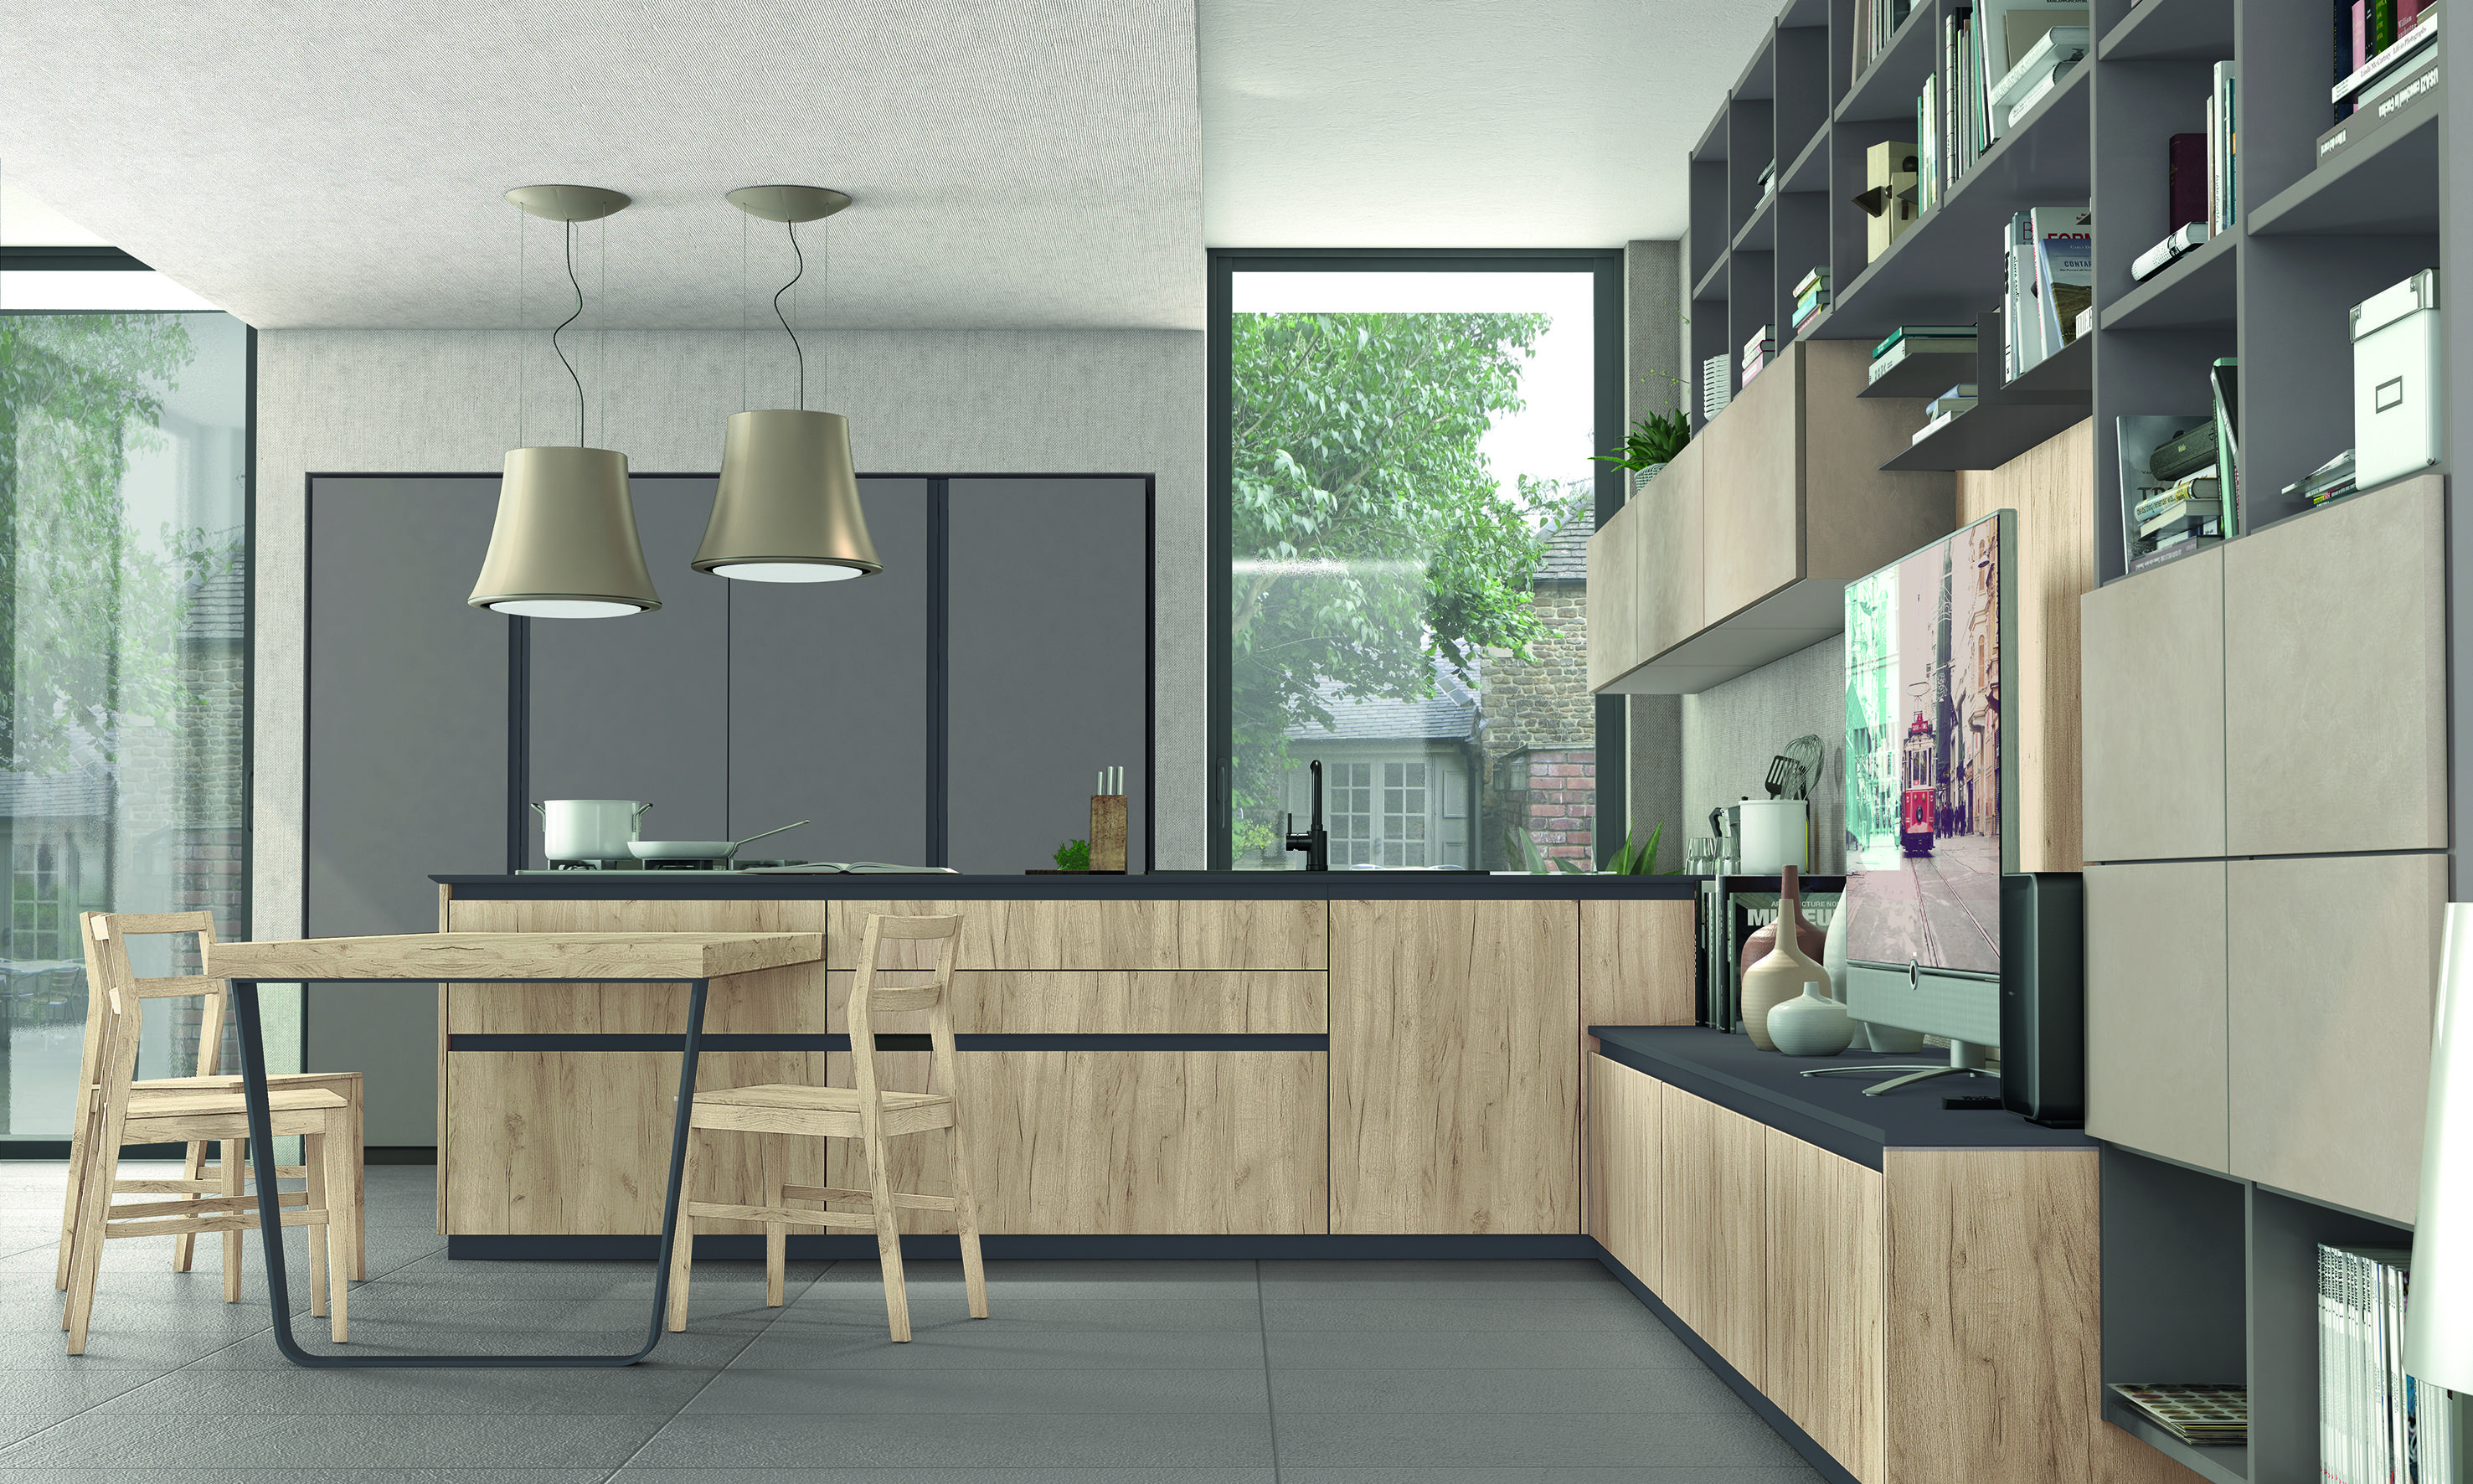 Immagina kitchen designs by Cucine Lube, integrating the living ...